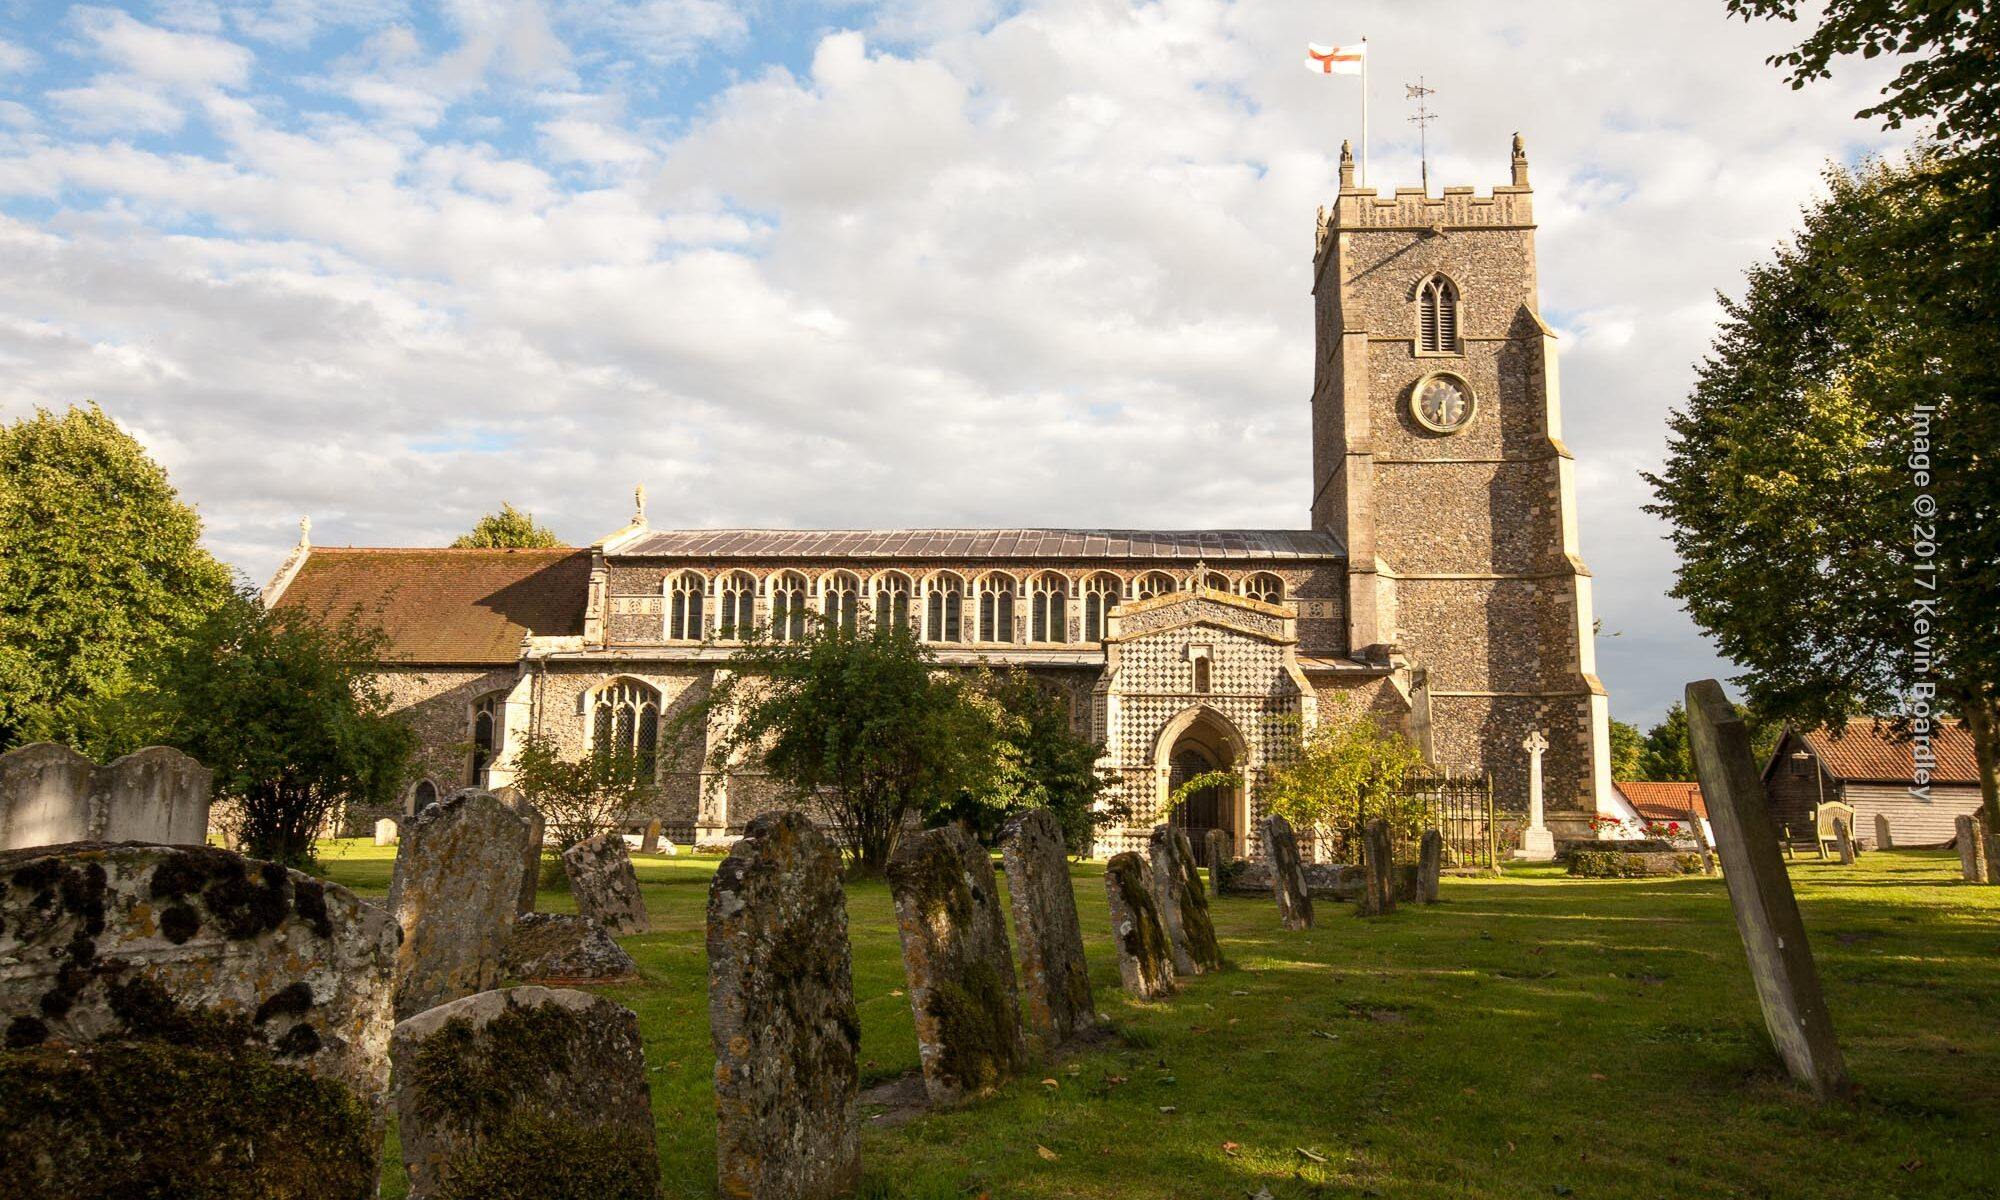 St Mary's Church Walsham le Willow